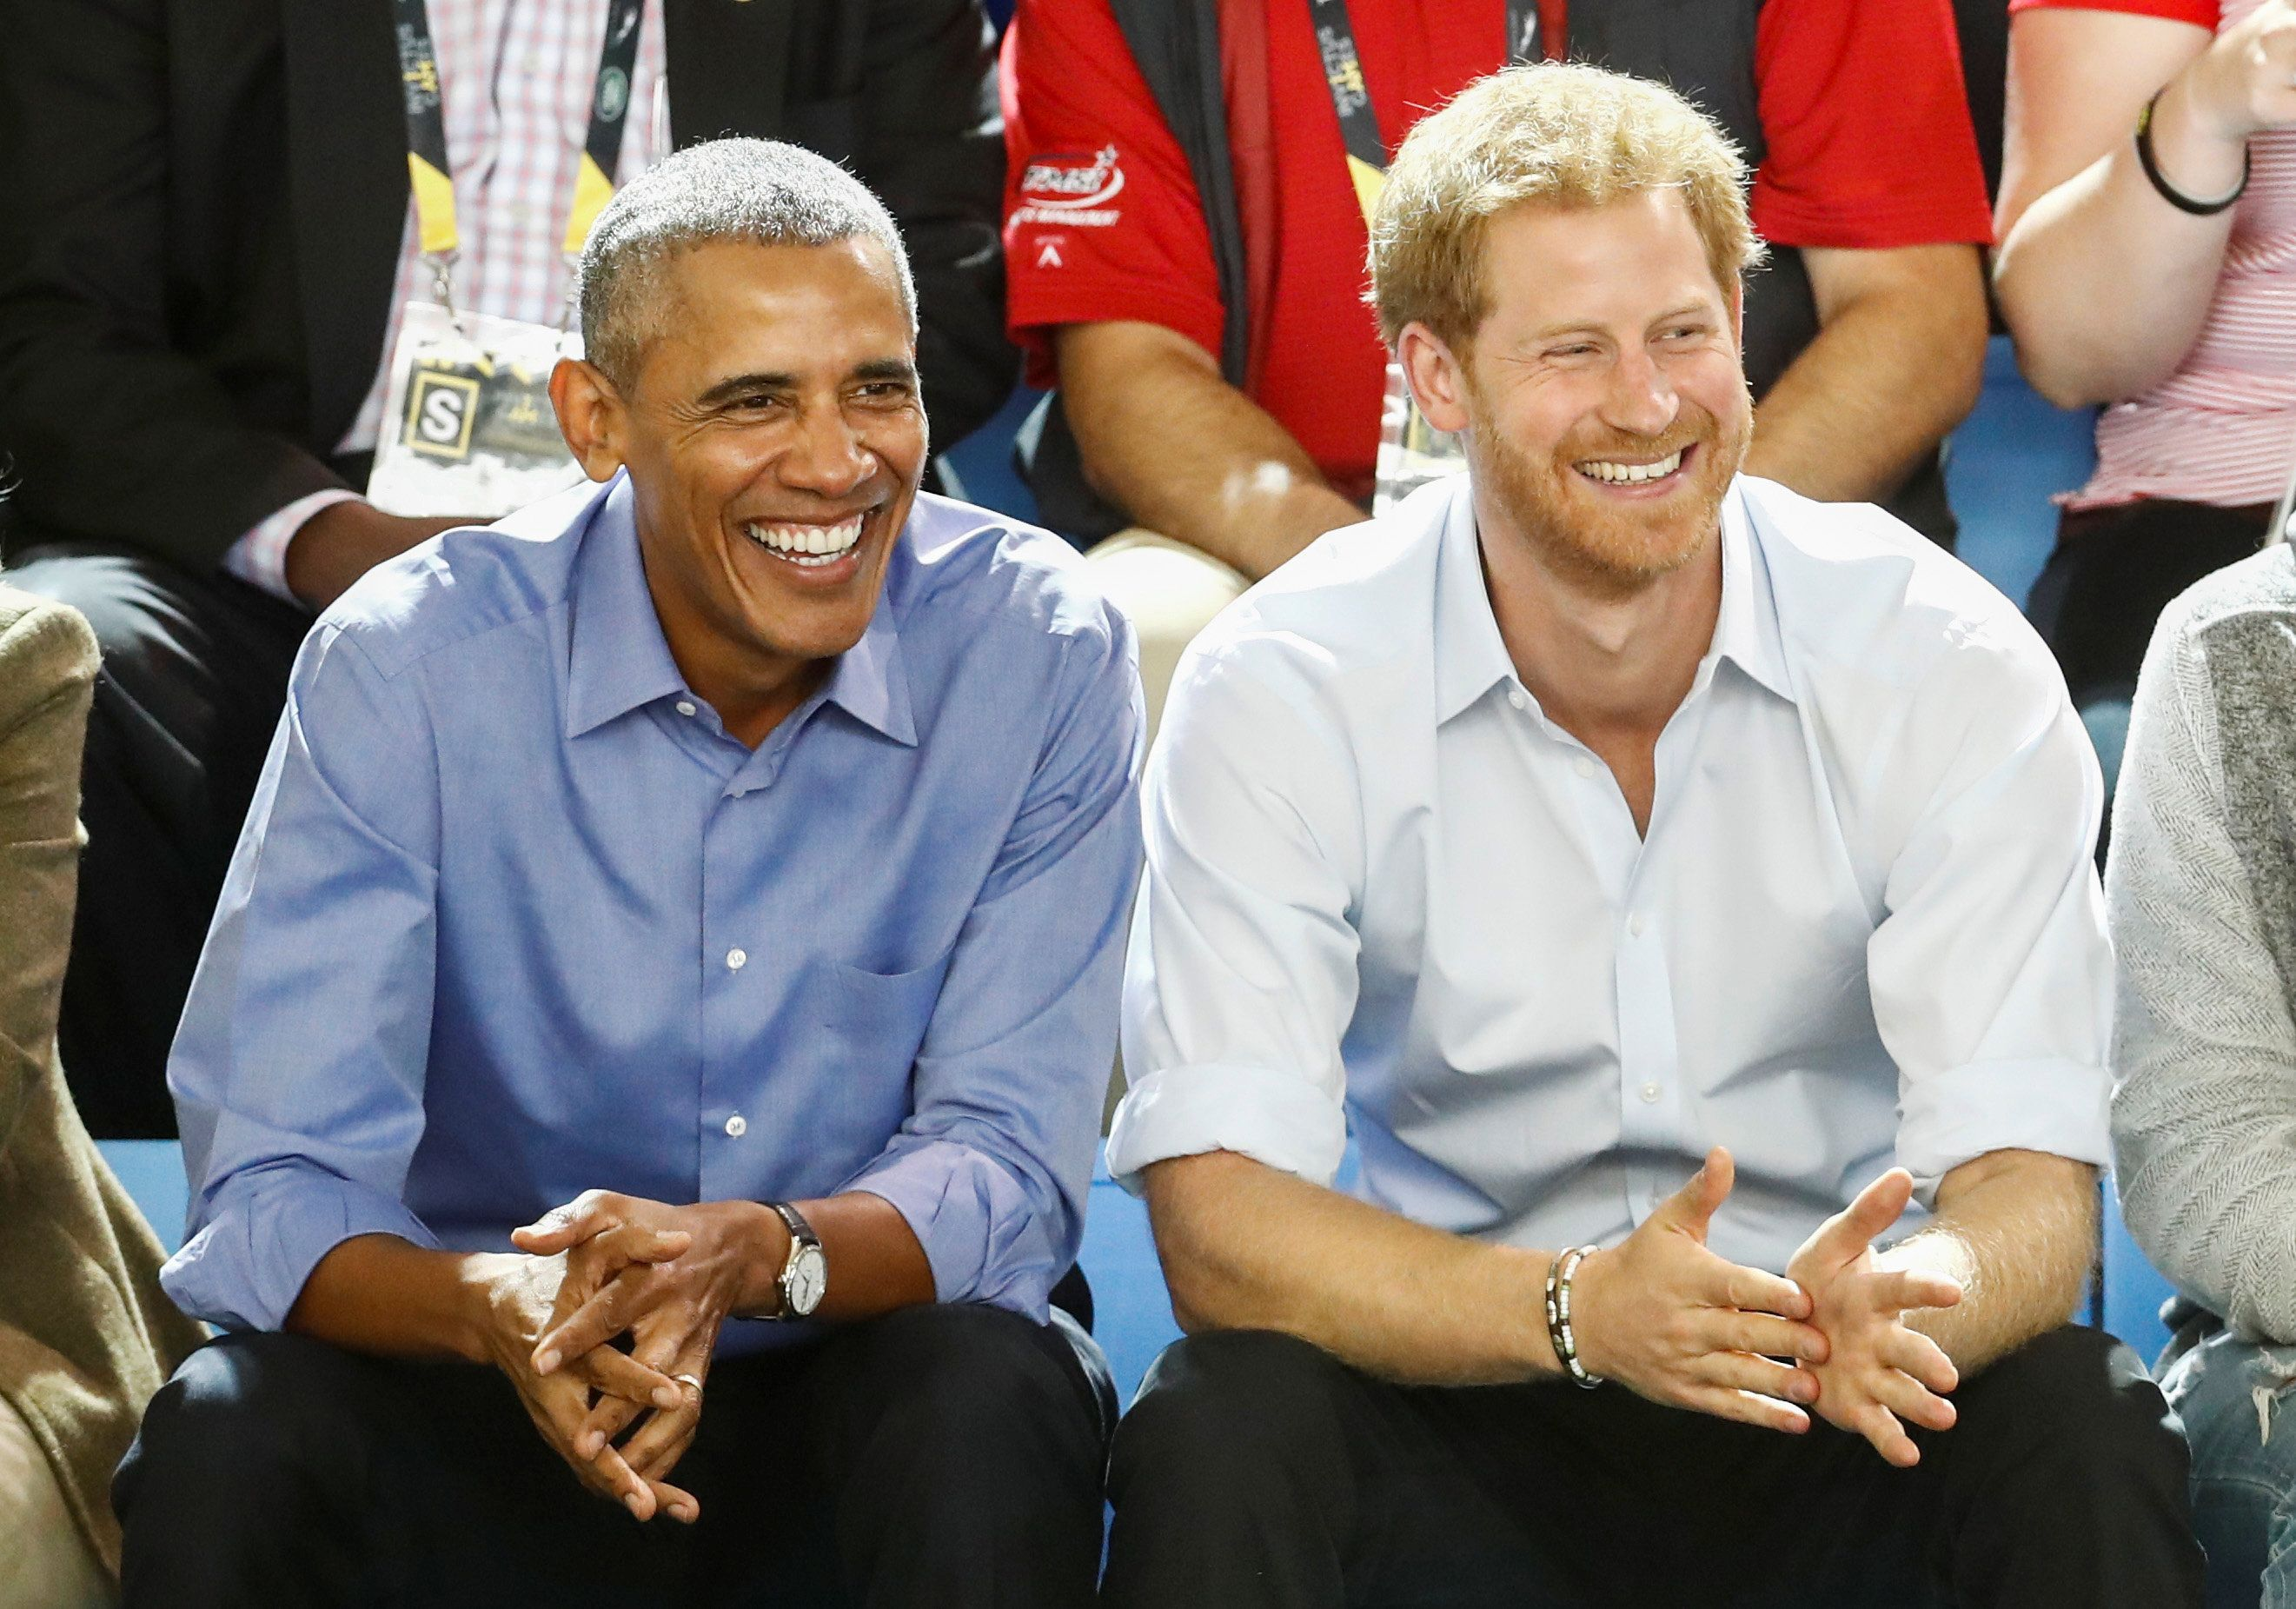 Britain's Prince Harry (R) and former U.S. President Barack Obama watch a wheelchair basketball event during the Invictus Games in Toronto, Ontario, Canada September 29, 2017.    REUTERS/Mark Blinch